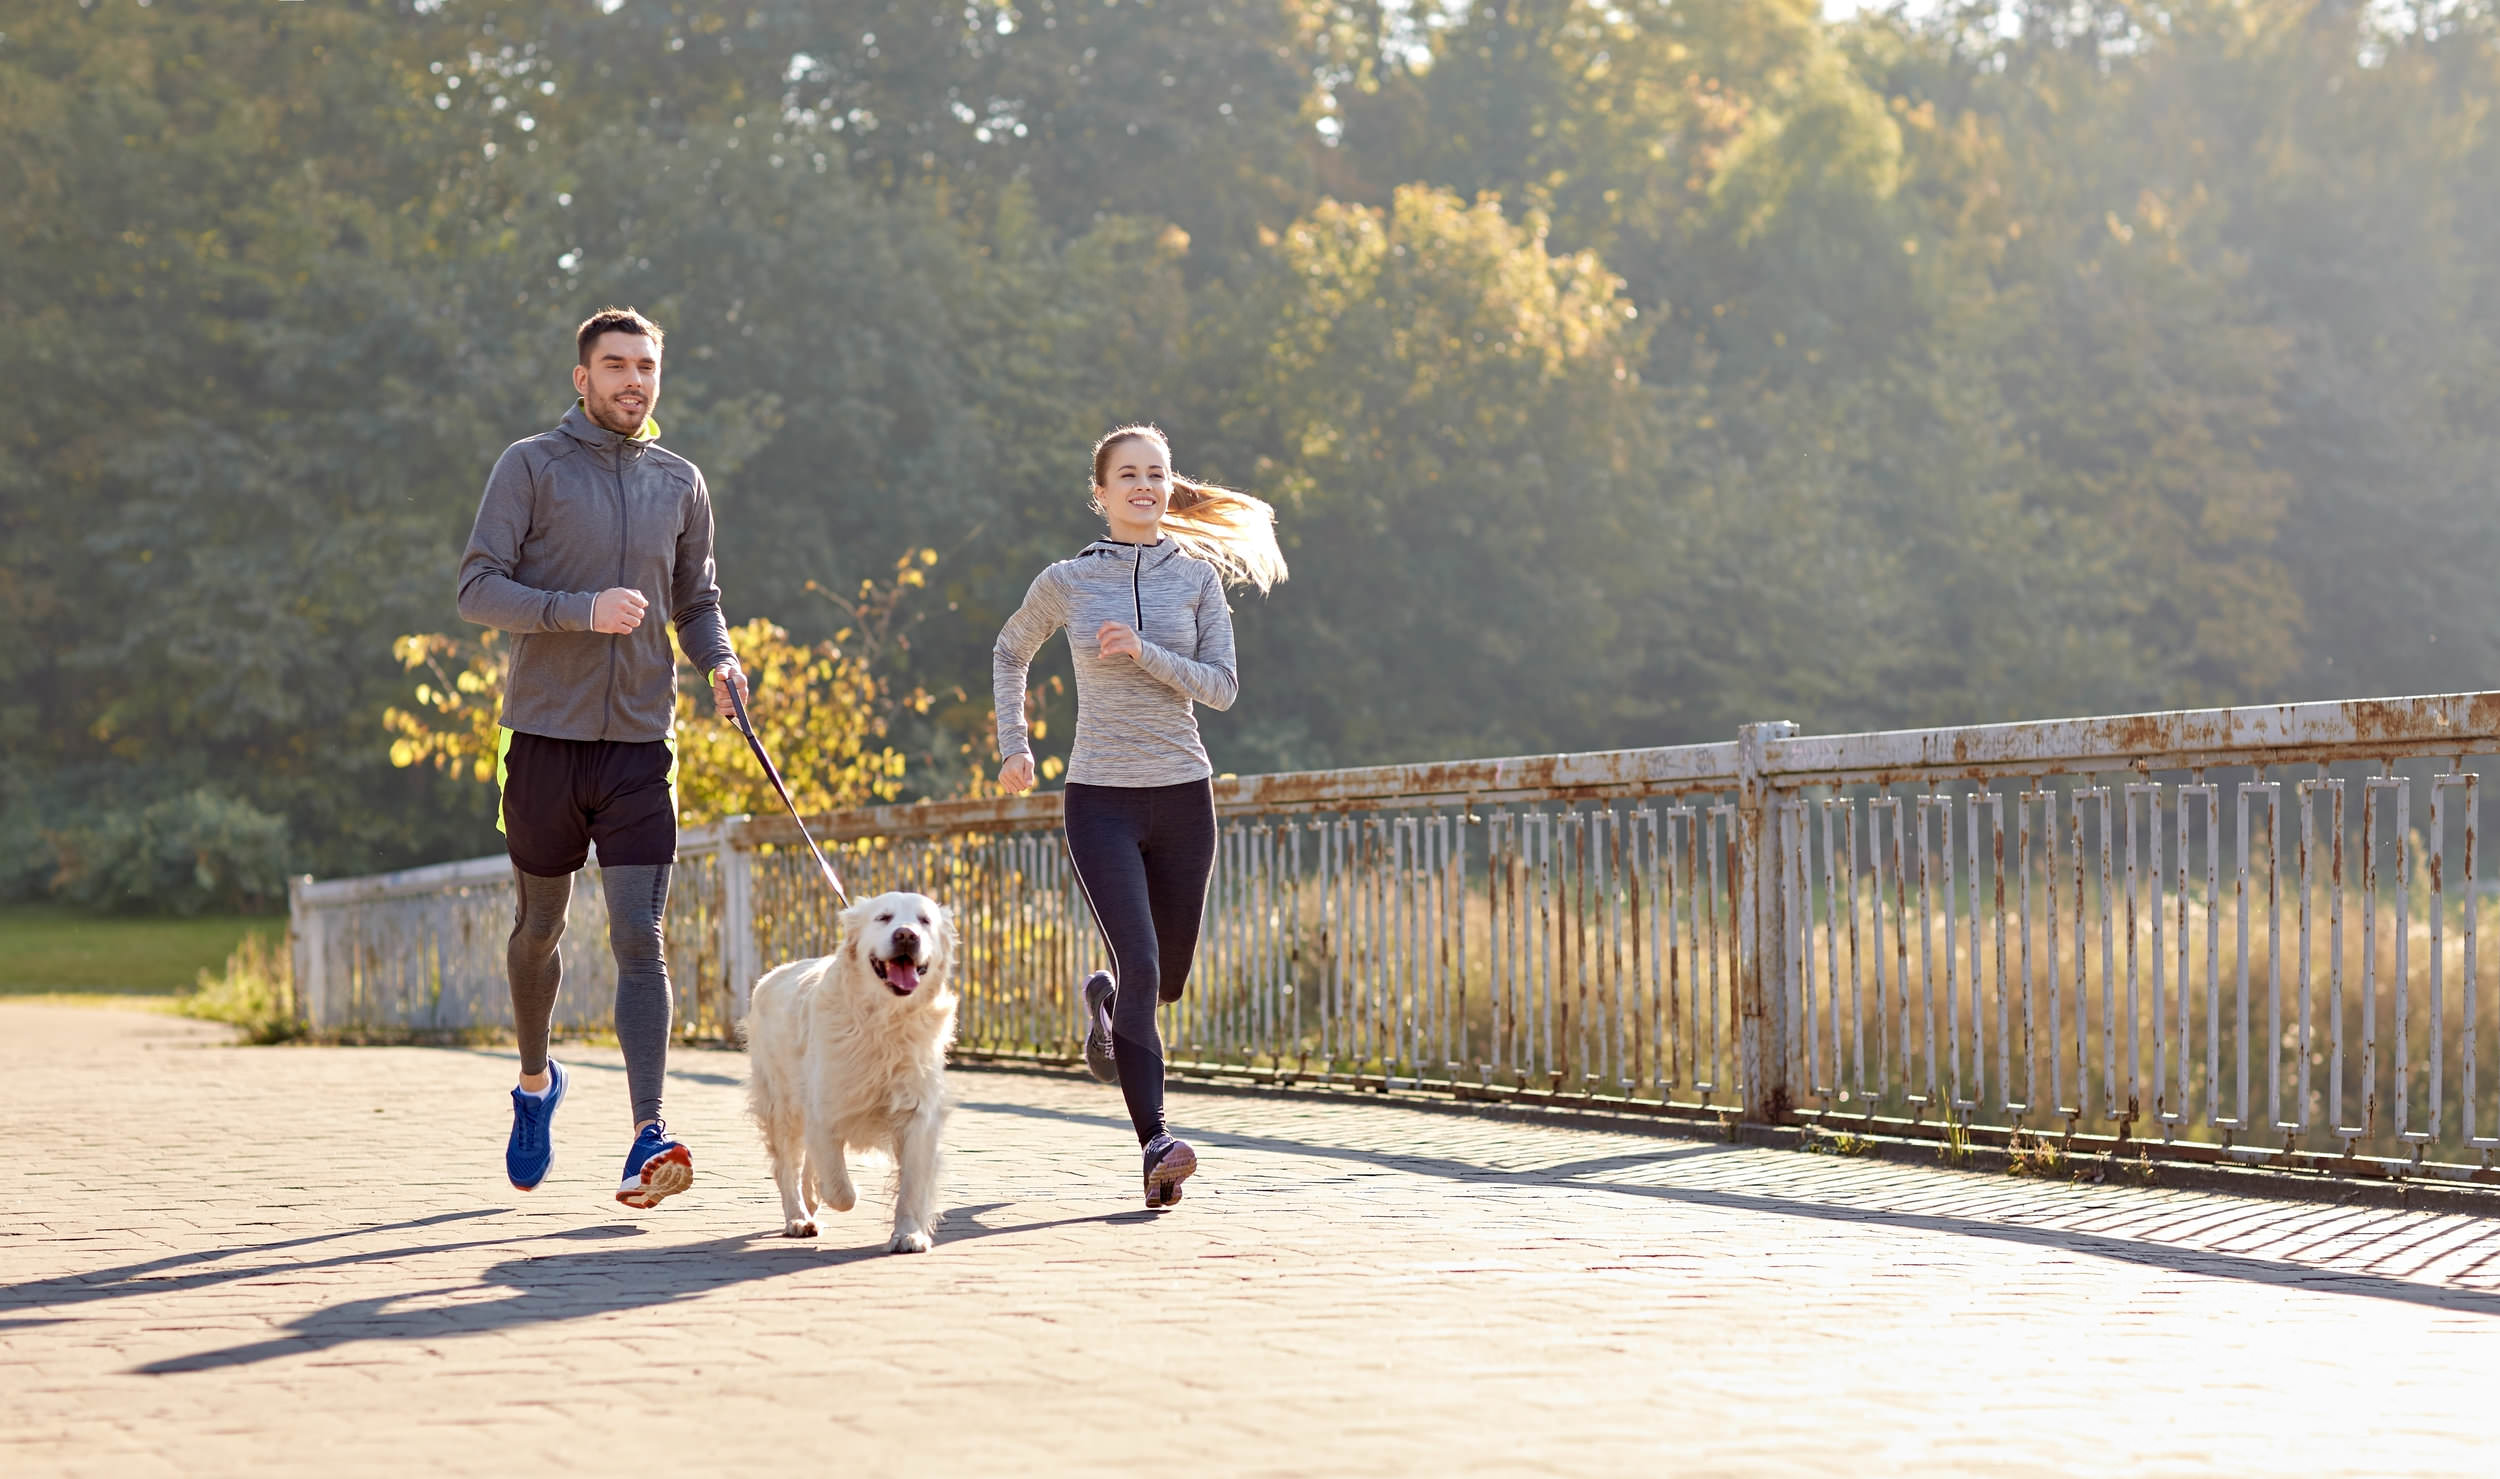 Happy couple with dog running outdoors.jpg